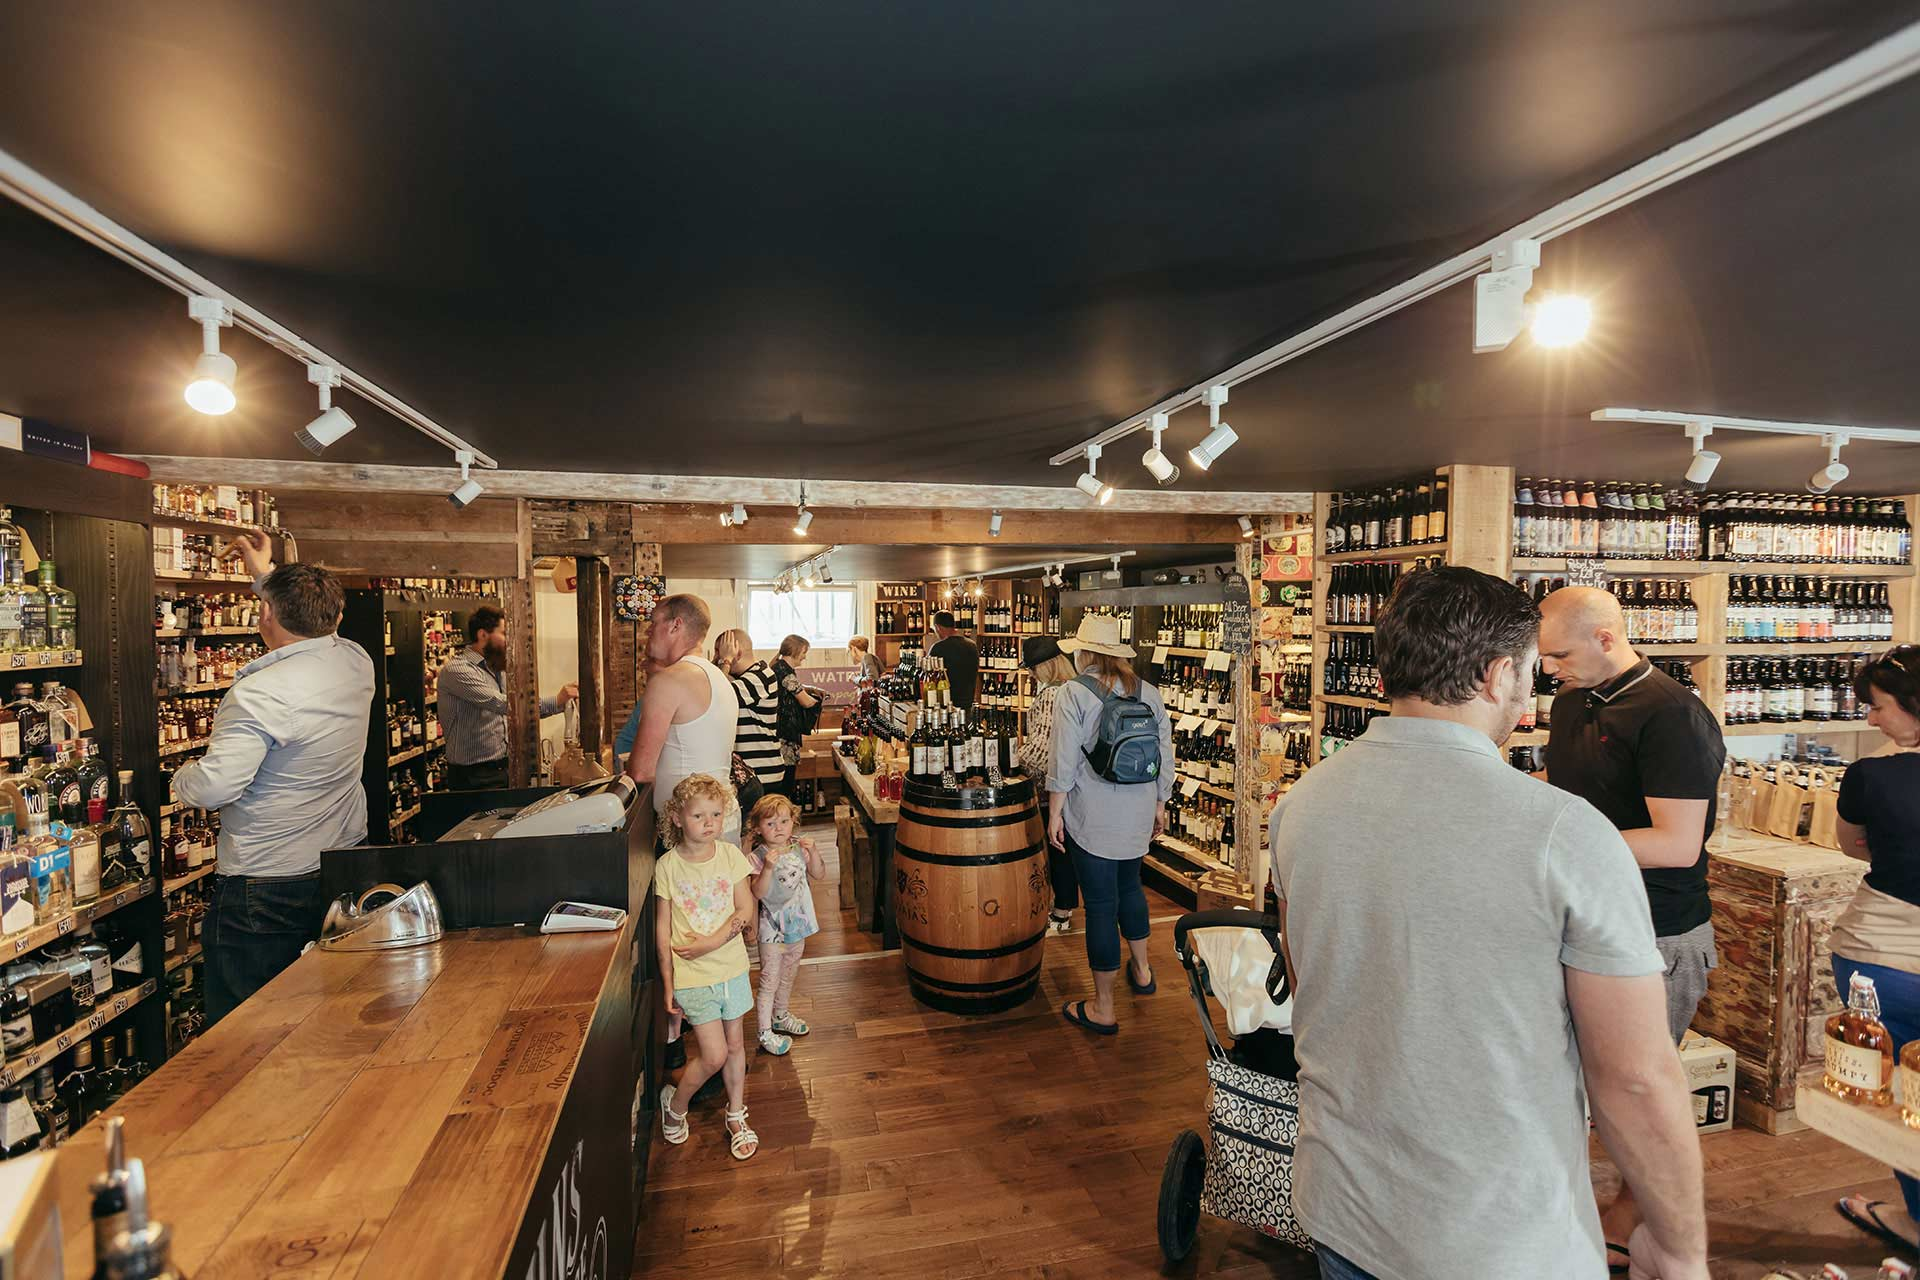 Visitors at John's Wine Store designed by Boex